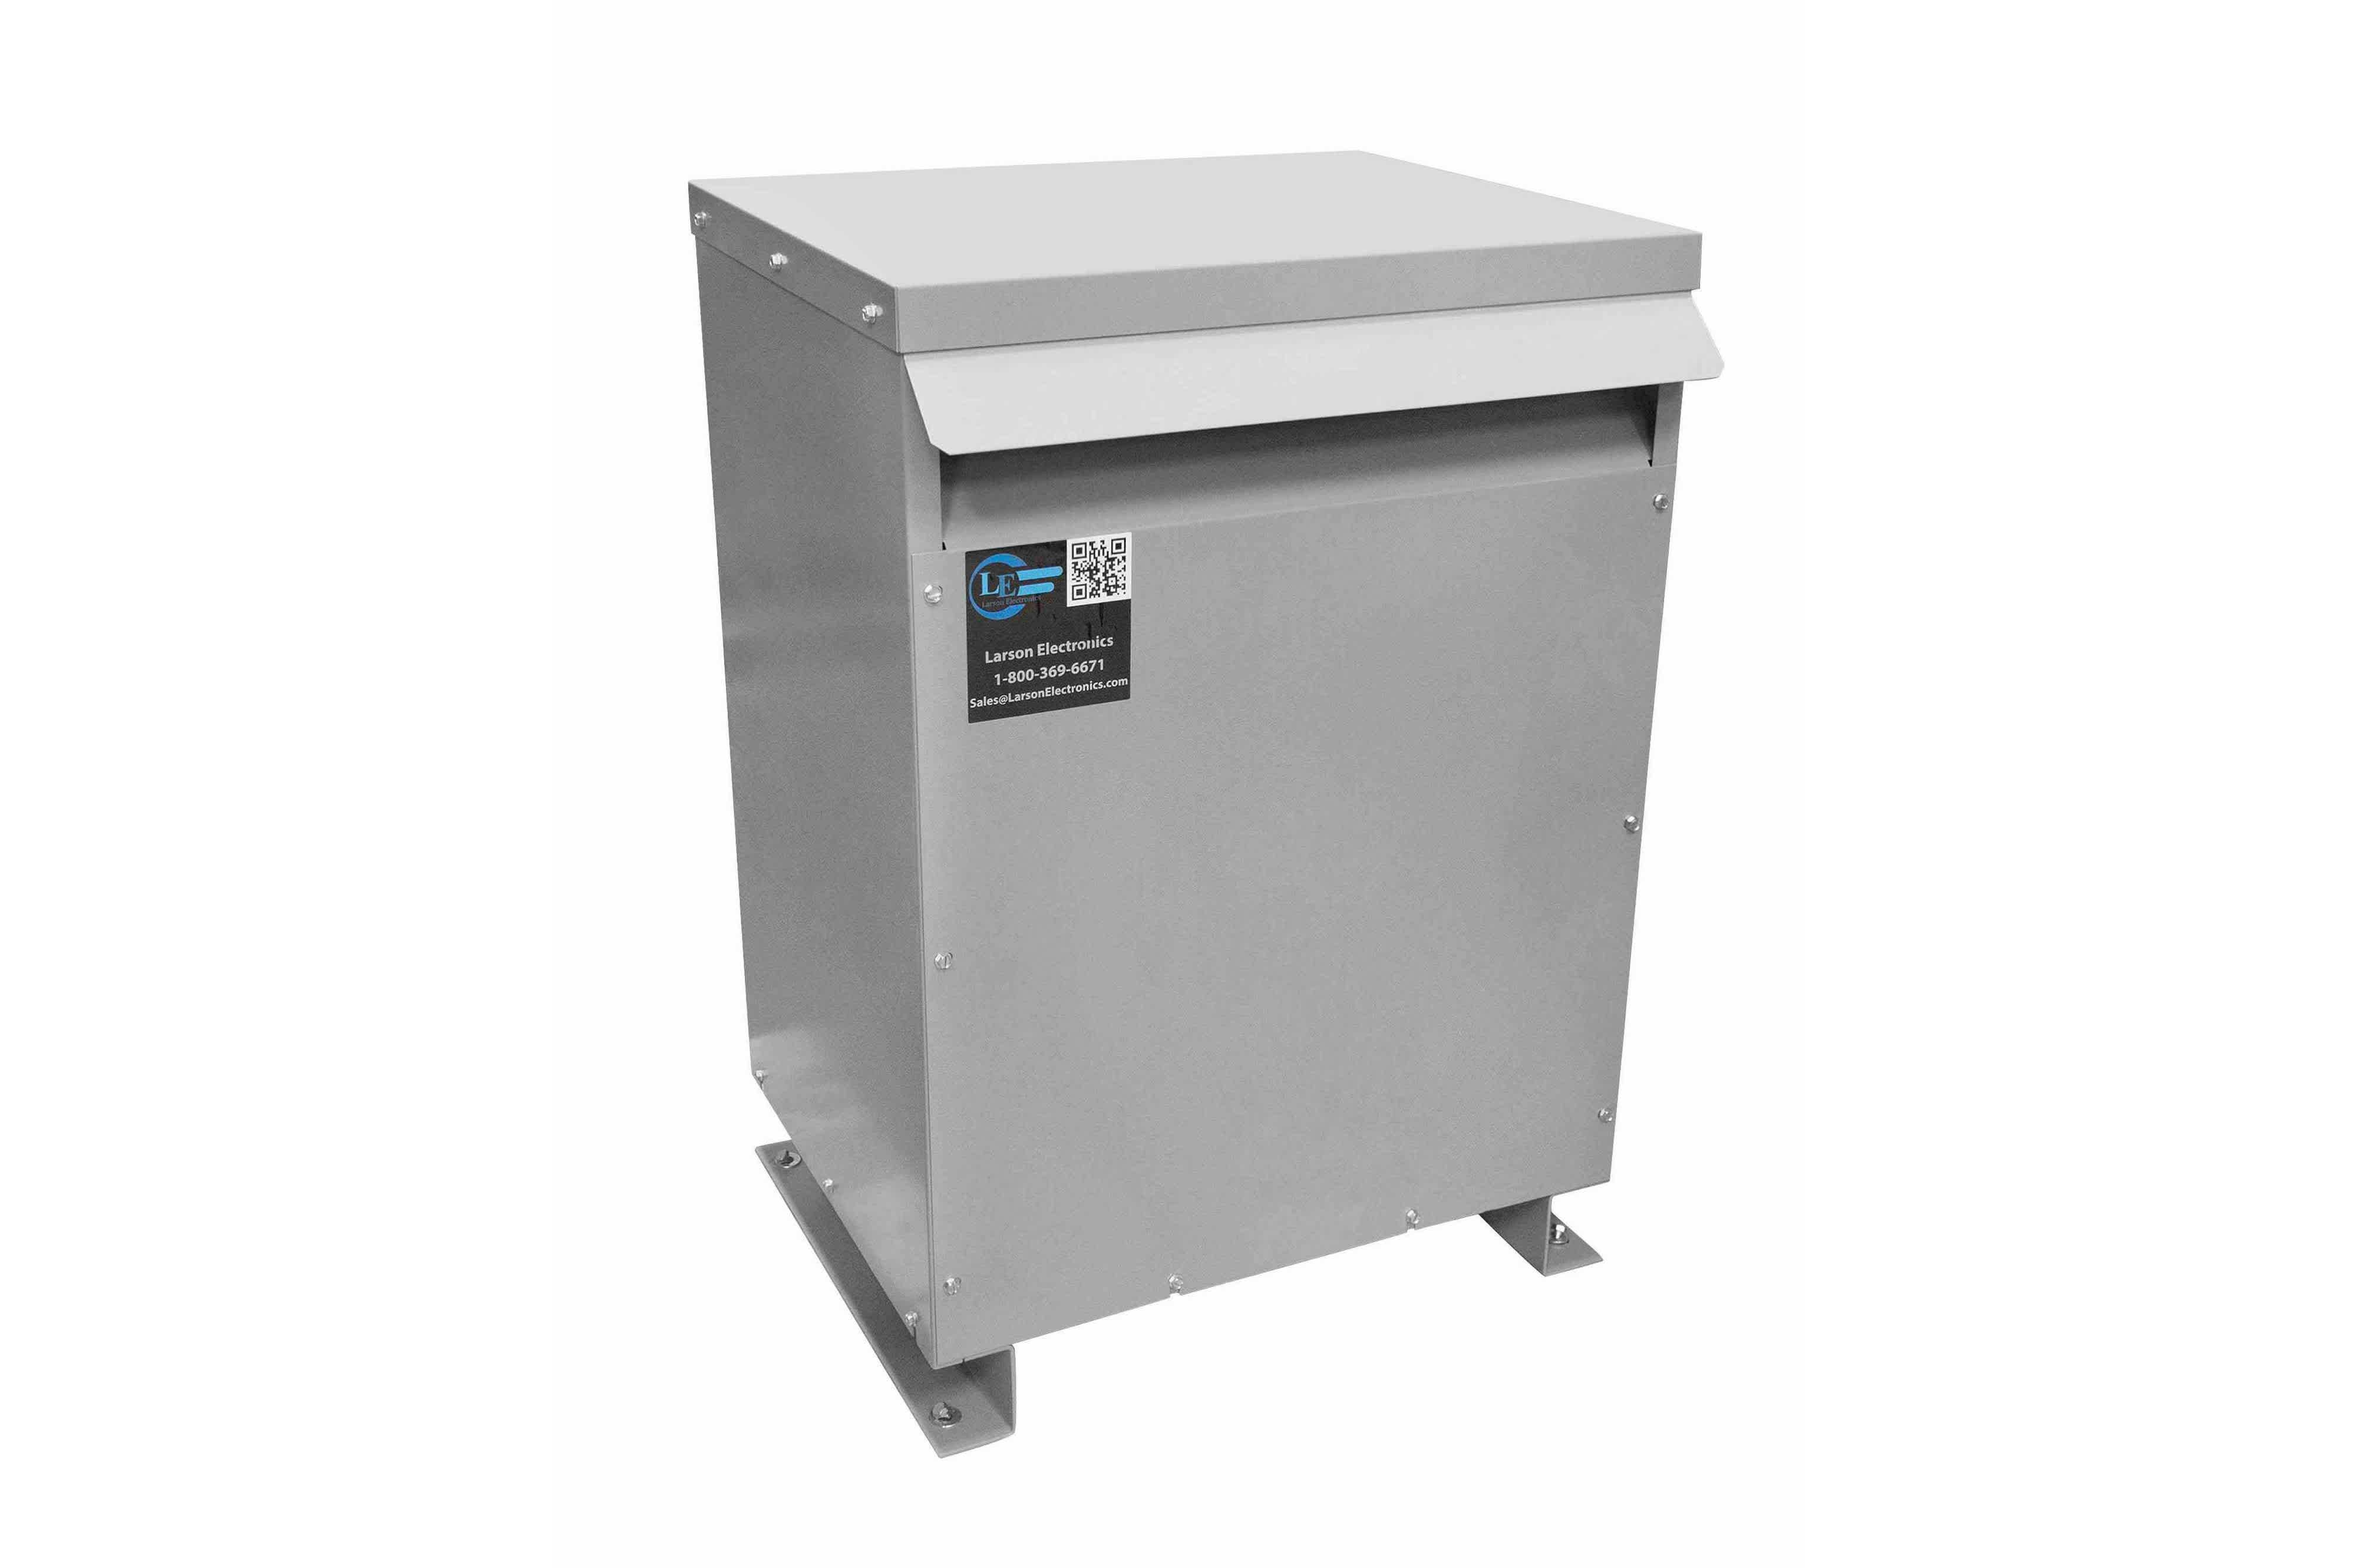 28 kVA 3PH DOE Transformer, 220V Delta Primary, 480Y/277 Wye-N Secondary, N3R, Ventilated, 60 Hz